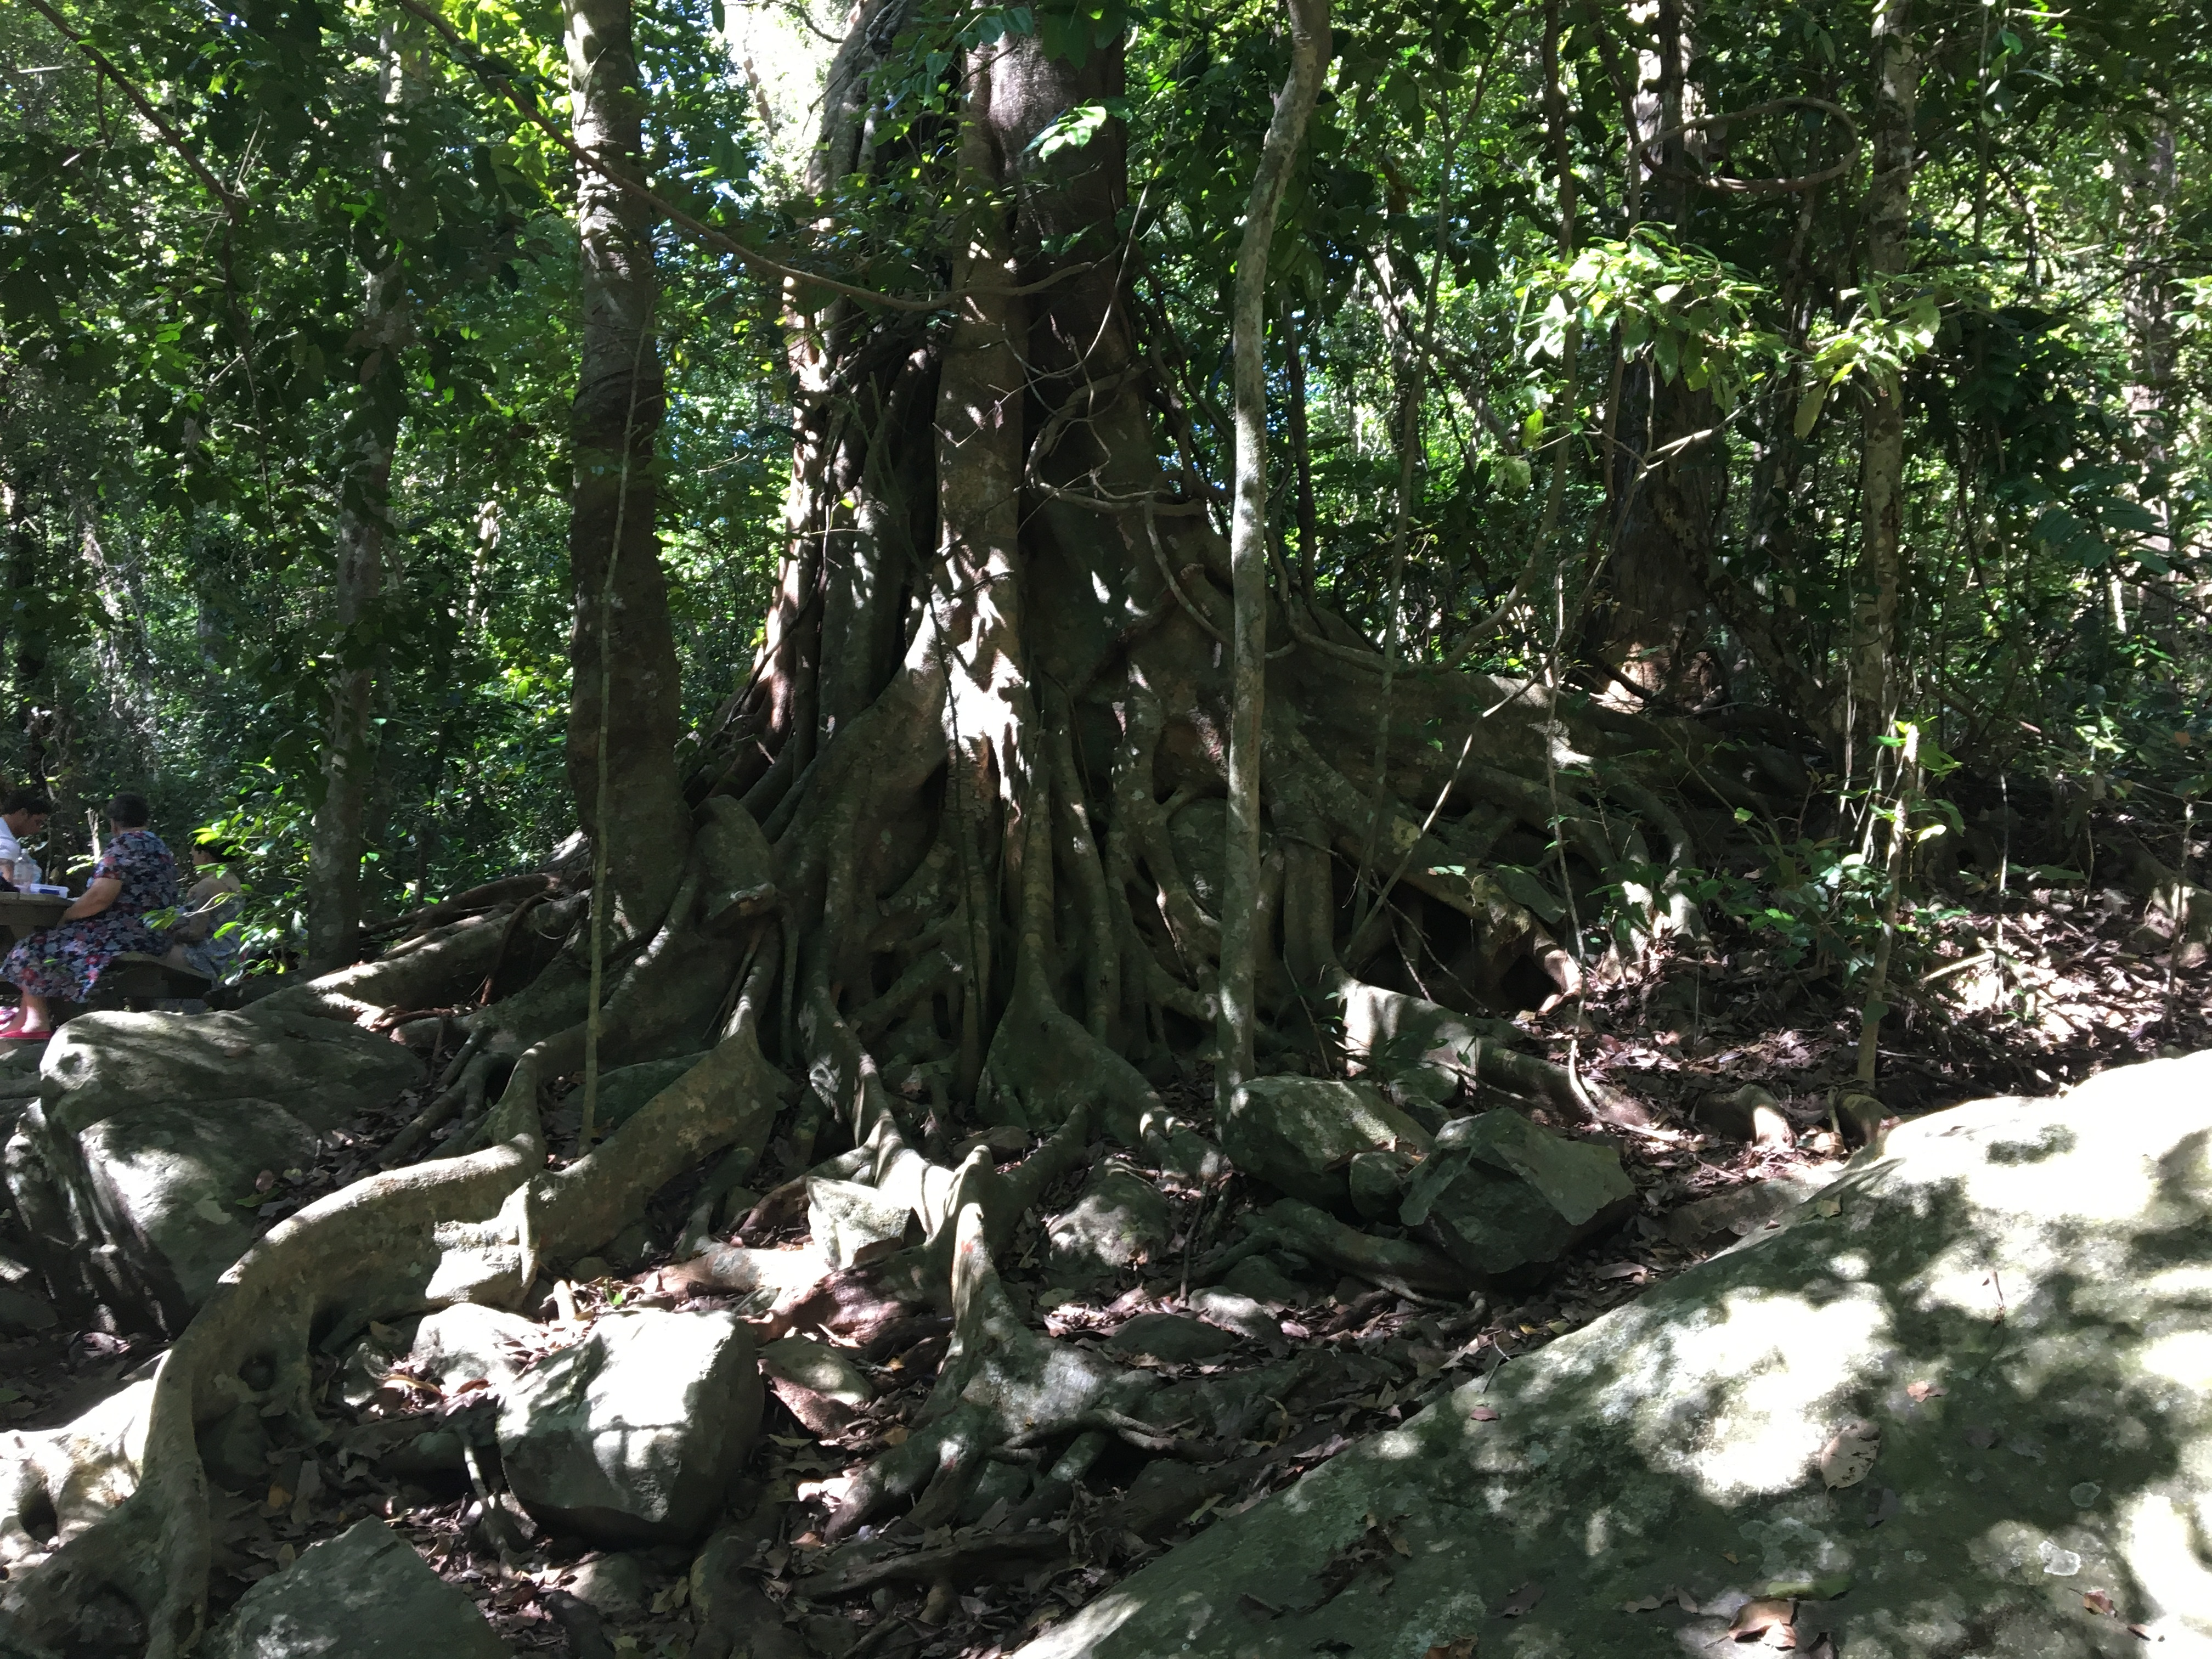 Giant fig tree in the Paluma Rainforest